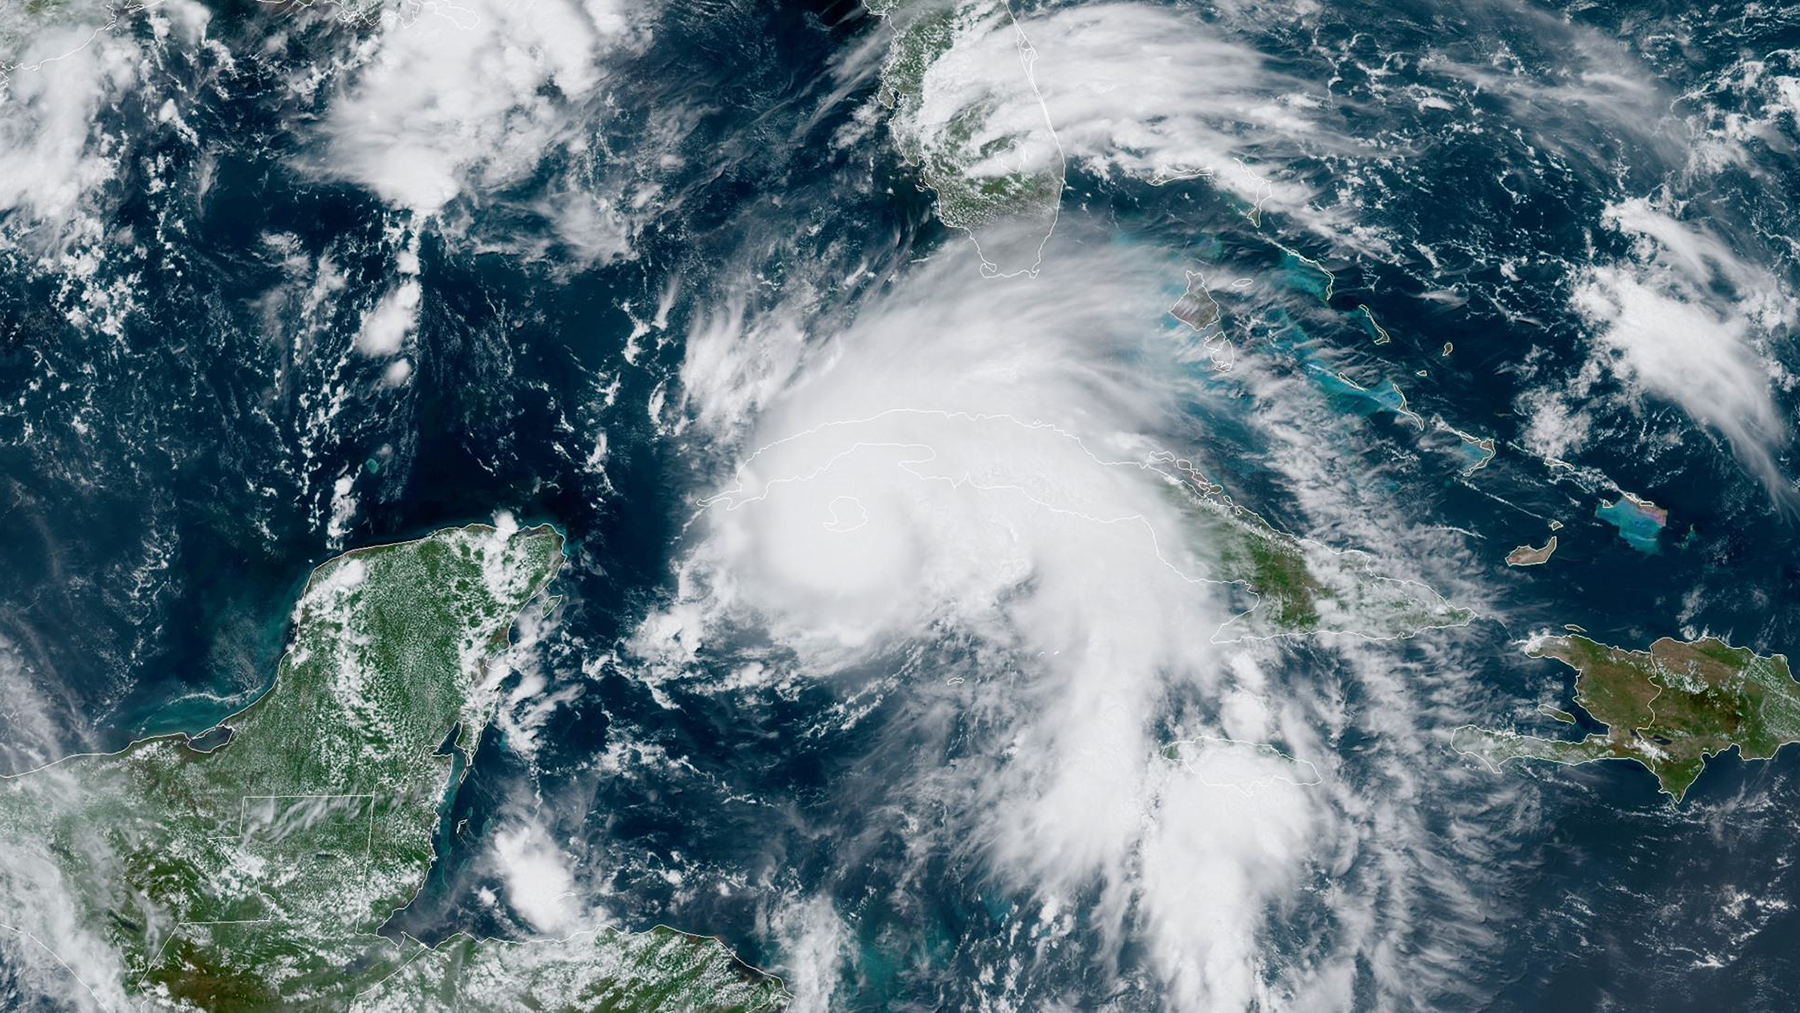 Hurricane Ida over the Caribbean on August 27, 2021. The storm made landfall in Louisiana Sunday and Direct Relief is coordinating with state and local officials about emergency medical needs. (Image courtest of NOAA)